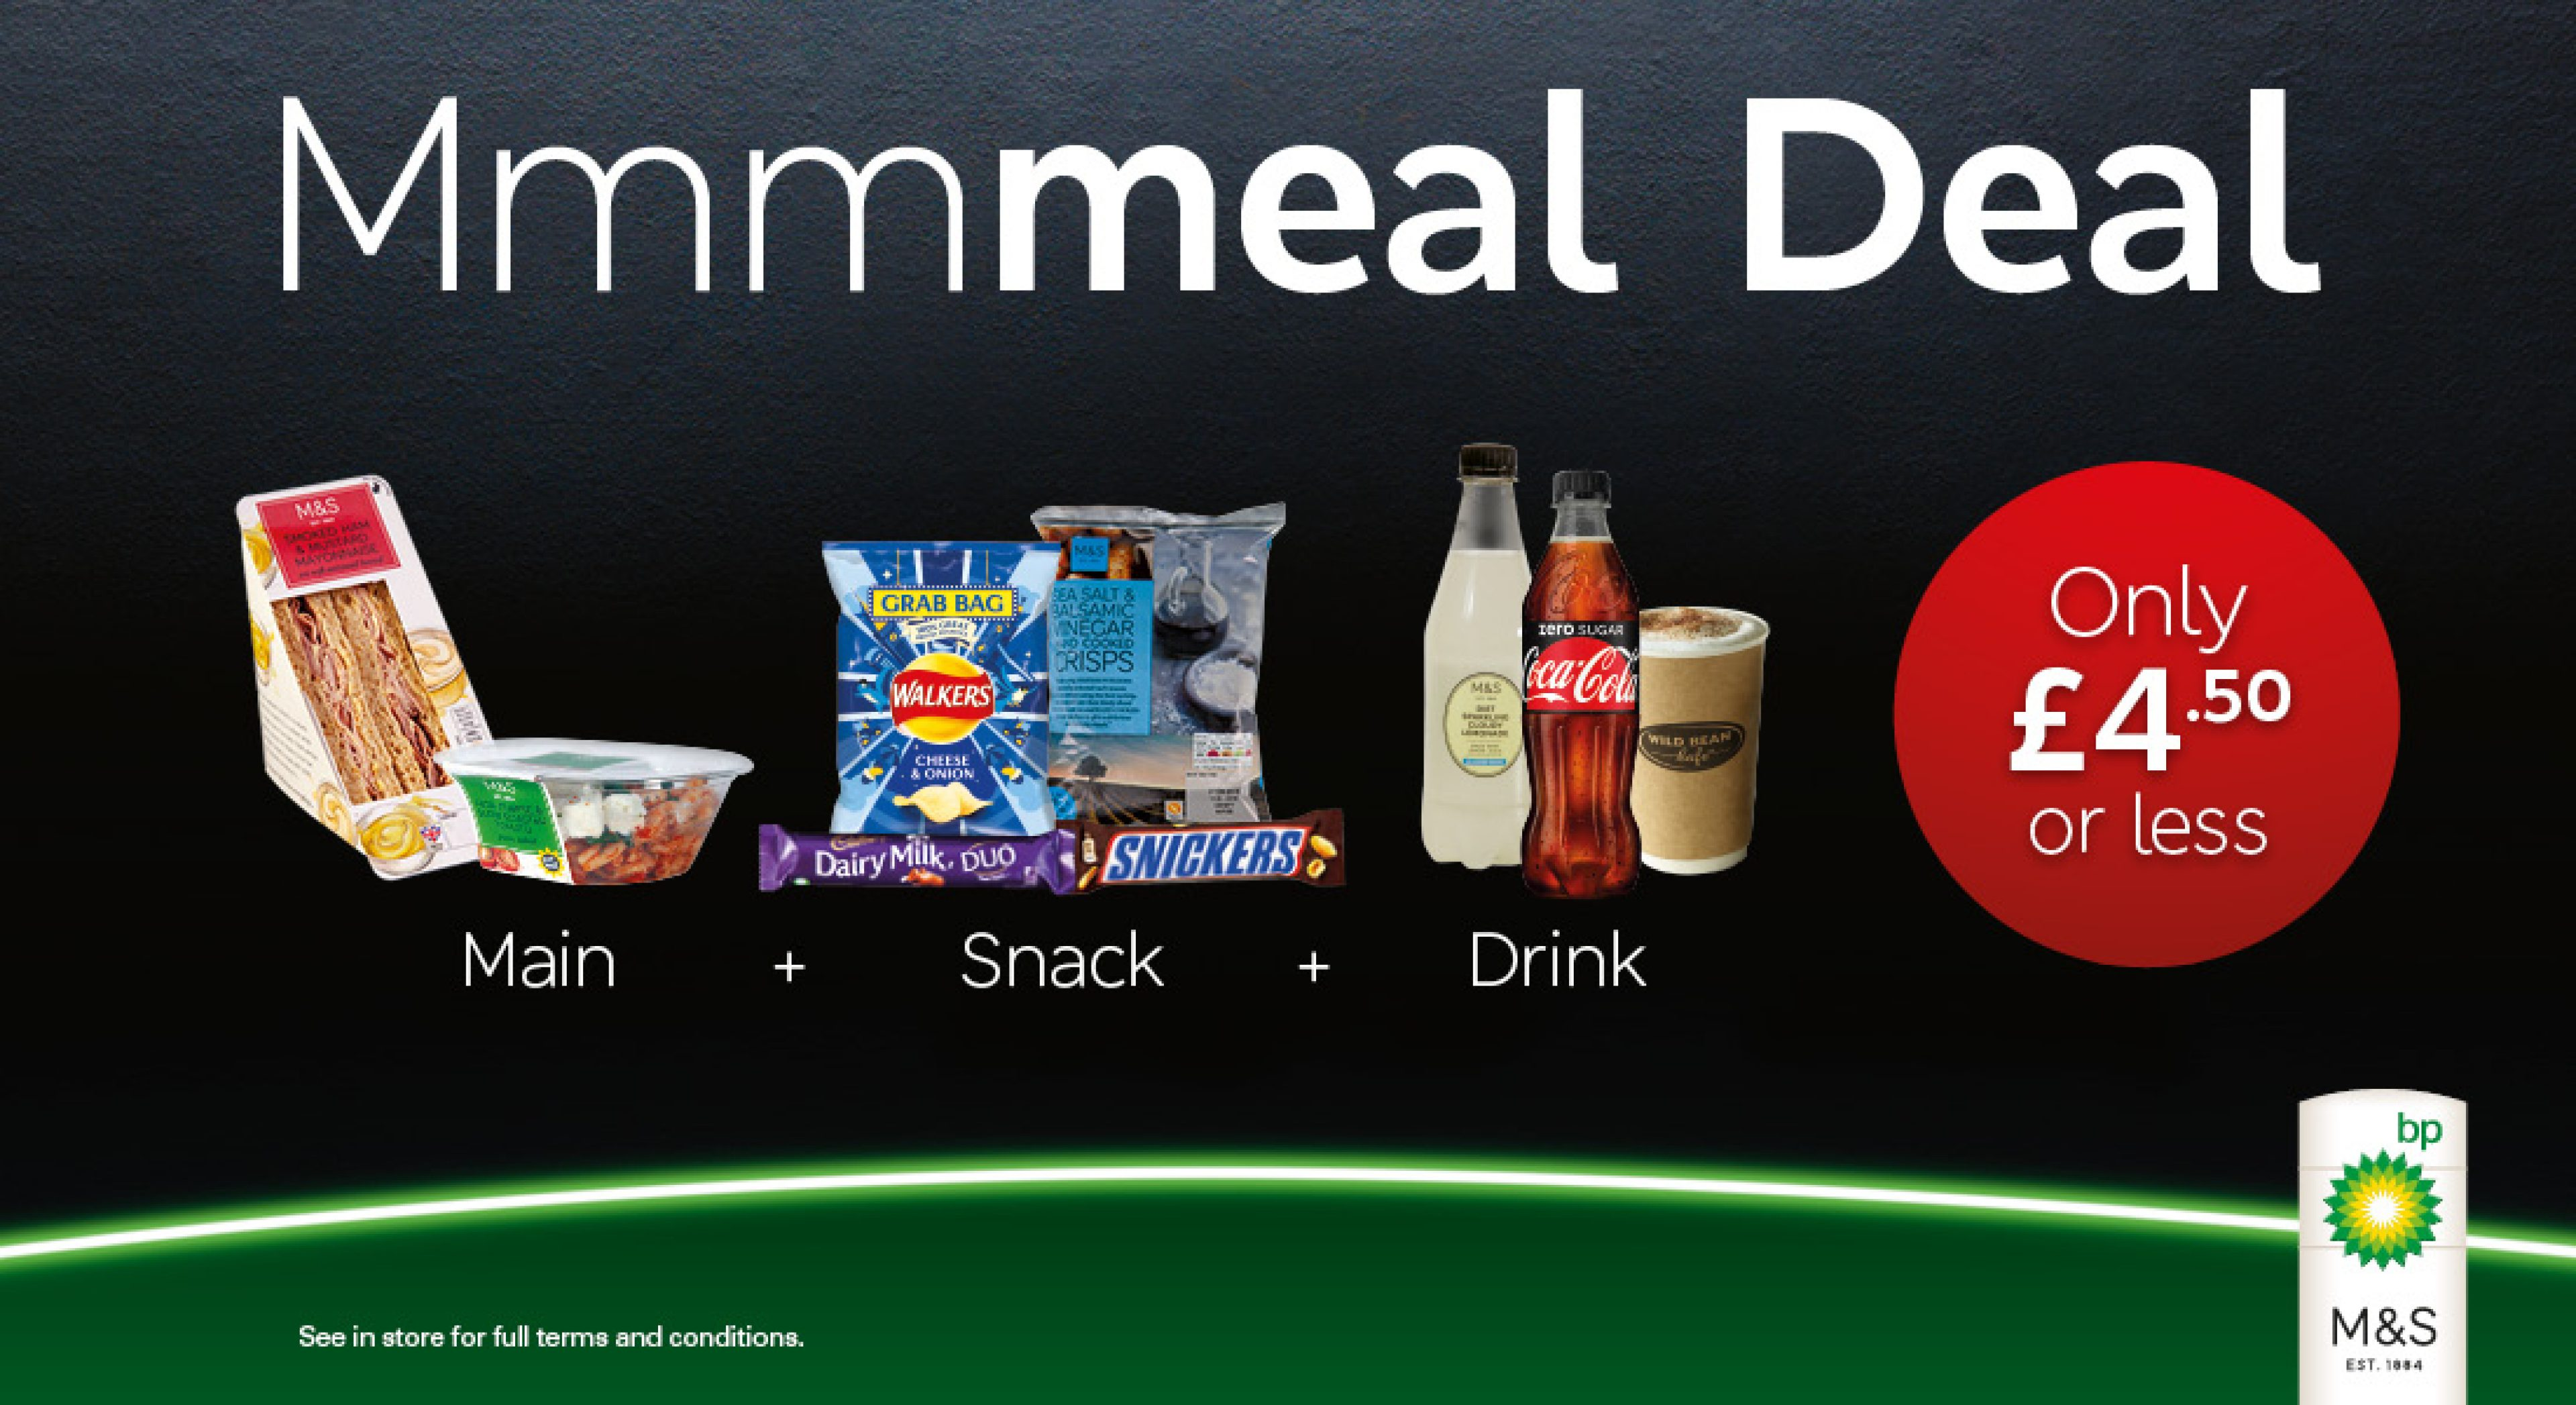 Did you seal the deal? Hope you didn't miss out on our amazing Meal Deal.